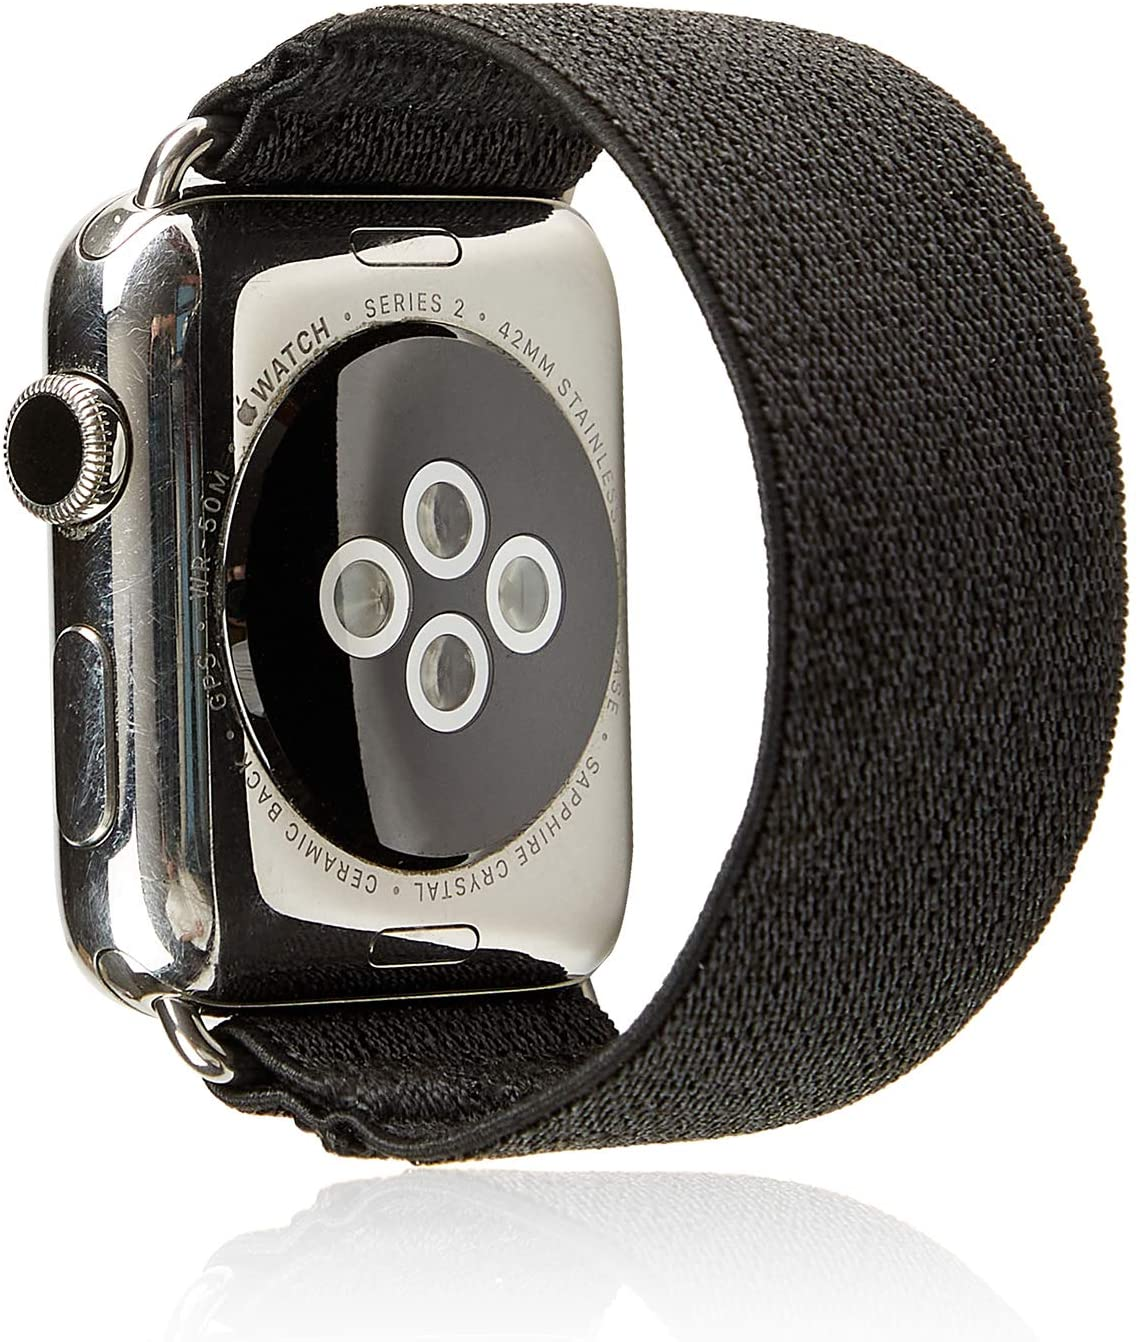 Elastic Band Compatible for Apple Watch, Scrunchie Stretch Wristbands Replacement Bracelet Loop Sport Strap for iWatch Series 1 2 3 4 5, Men Women Girls, Glitter Black, 38/40mm, L